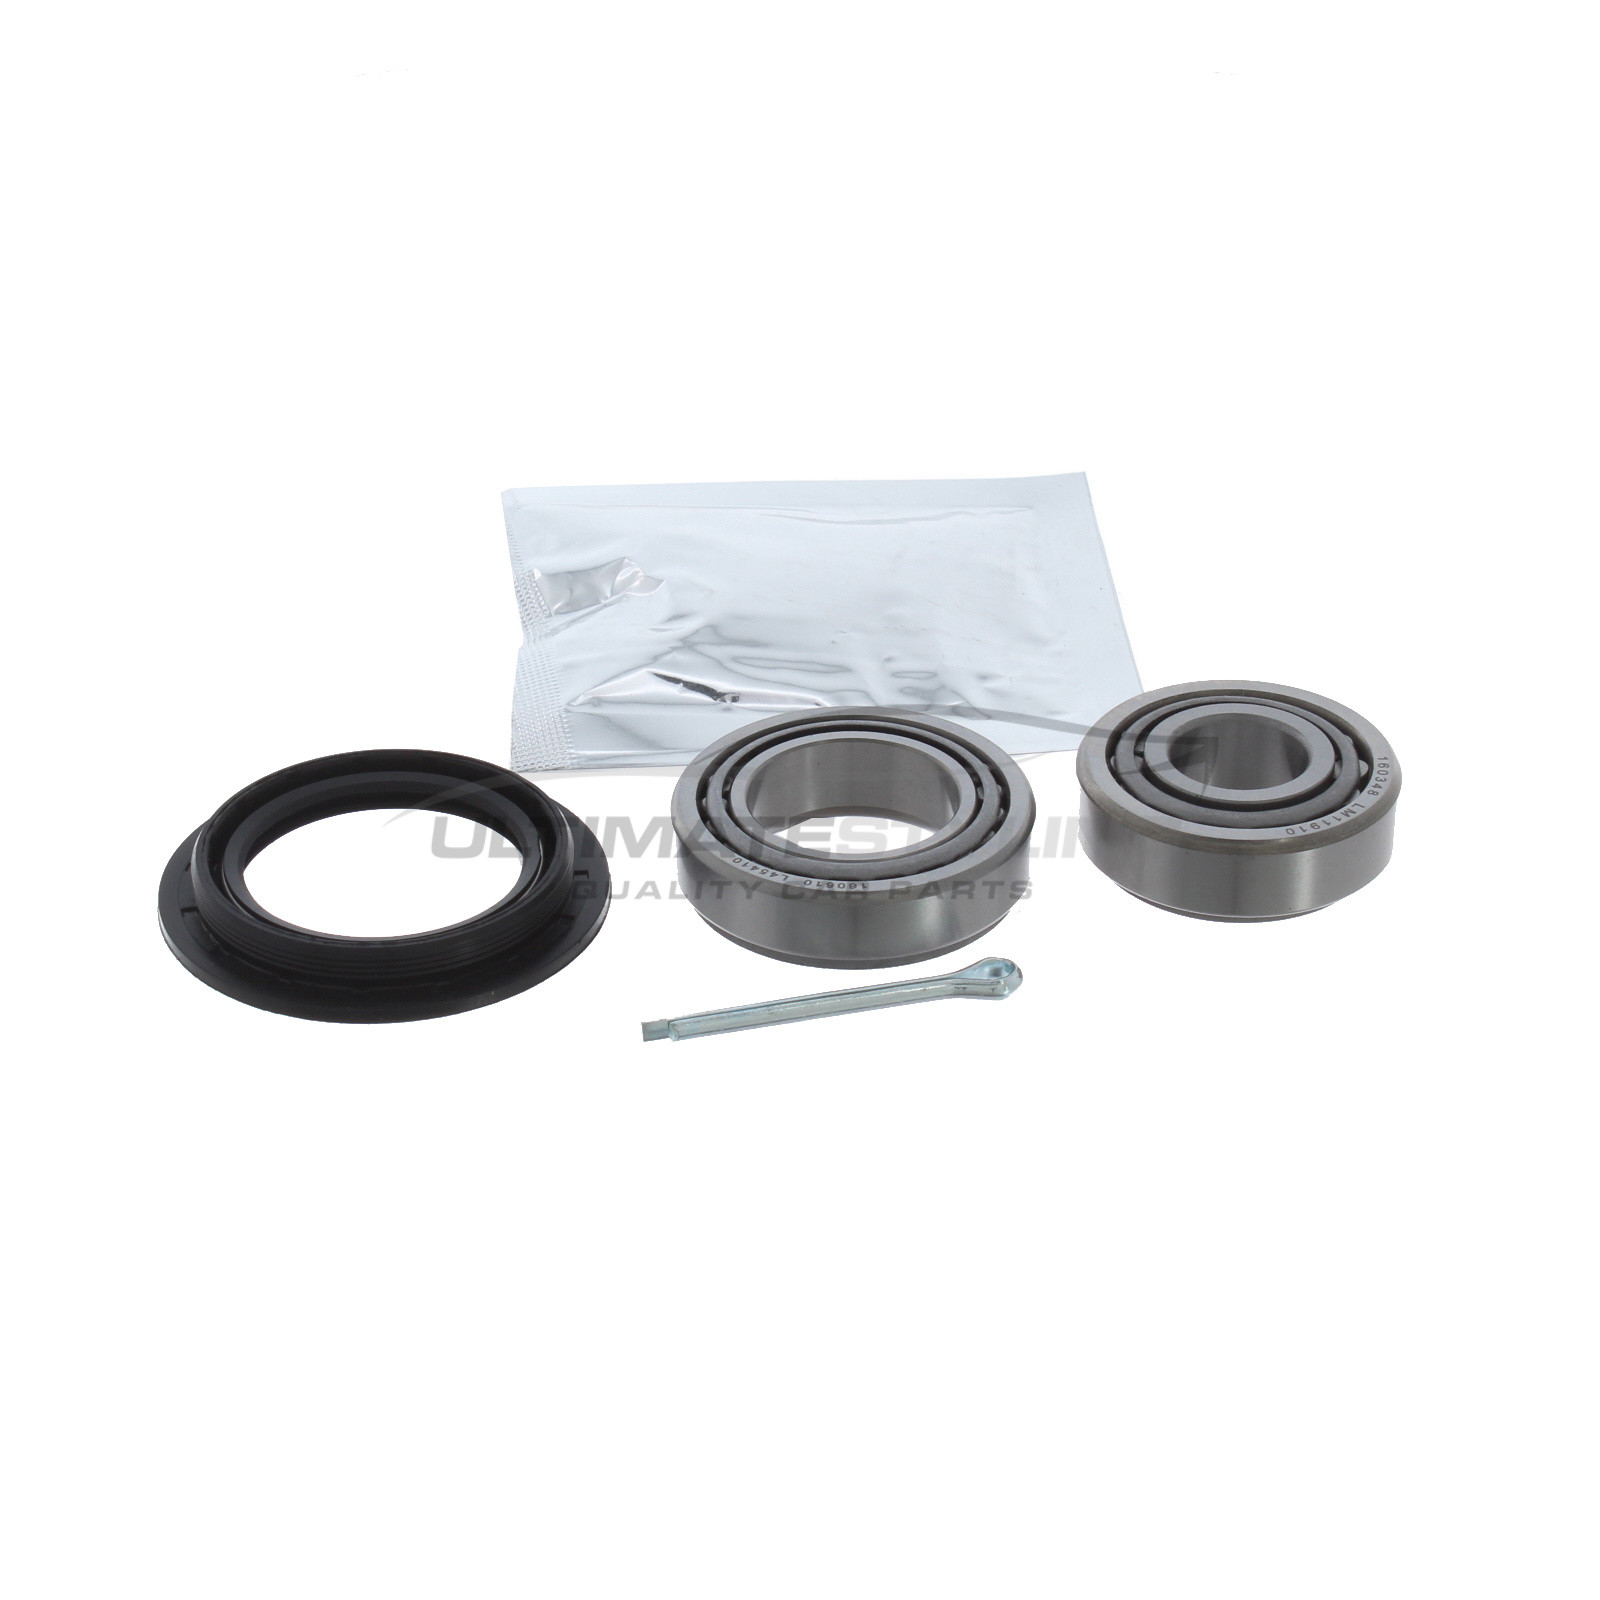 Rear Wheel Bearing Kit for Audi 80